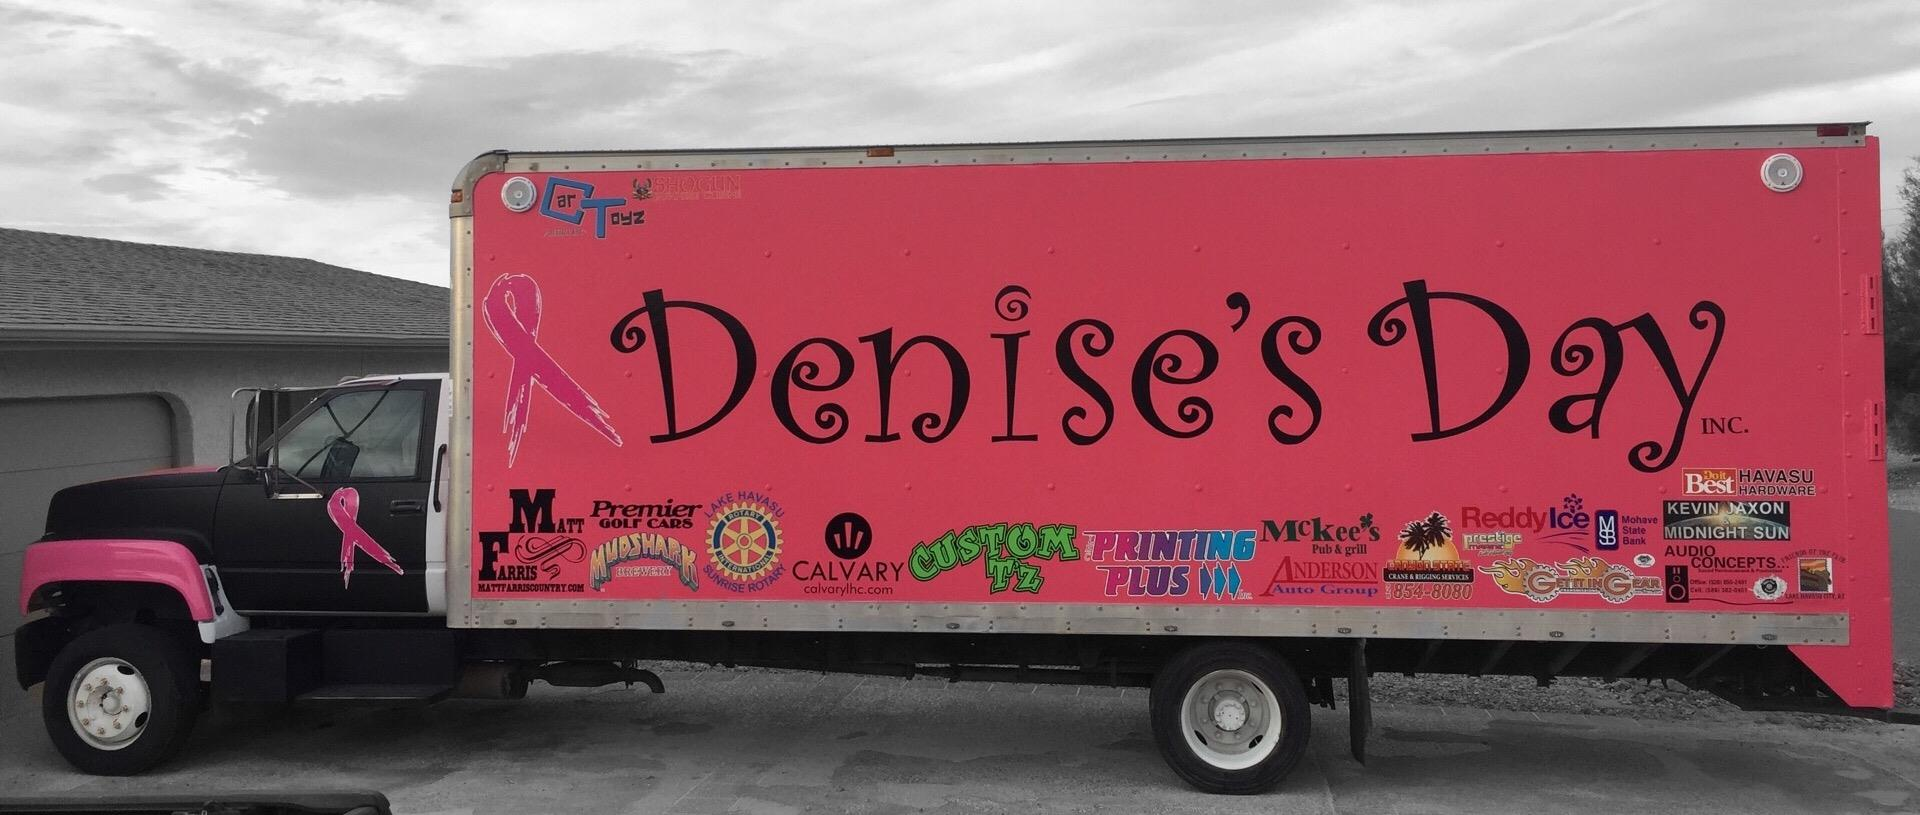 denise s day group s sunrise rotary lake havasu city many hours of refurbishing and great donations and a fantastic pink pain job their truck can be seen at local events and driving around the community